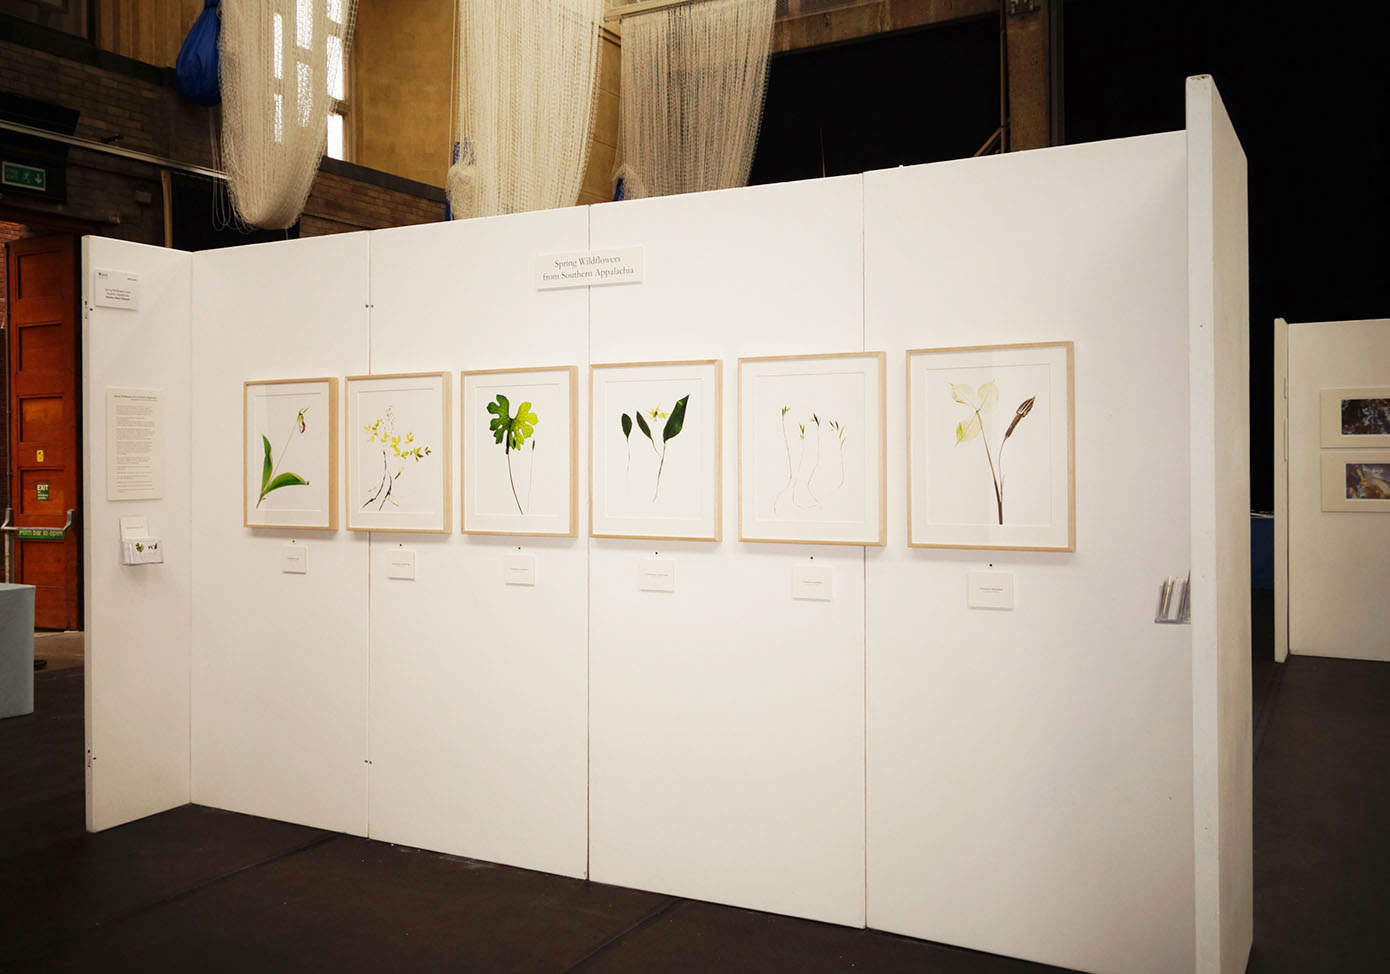 Exhibit at the Royal Horticultural Society's London Plant and Art Fair, 2018.